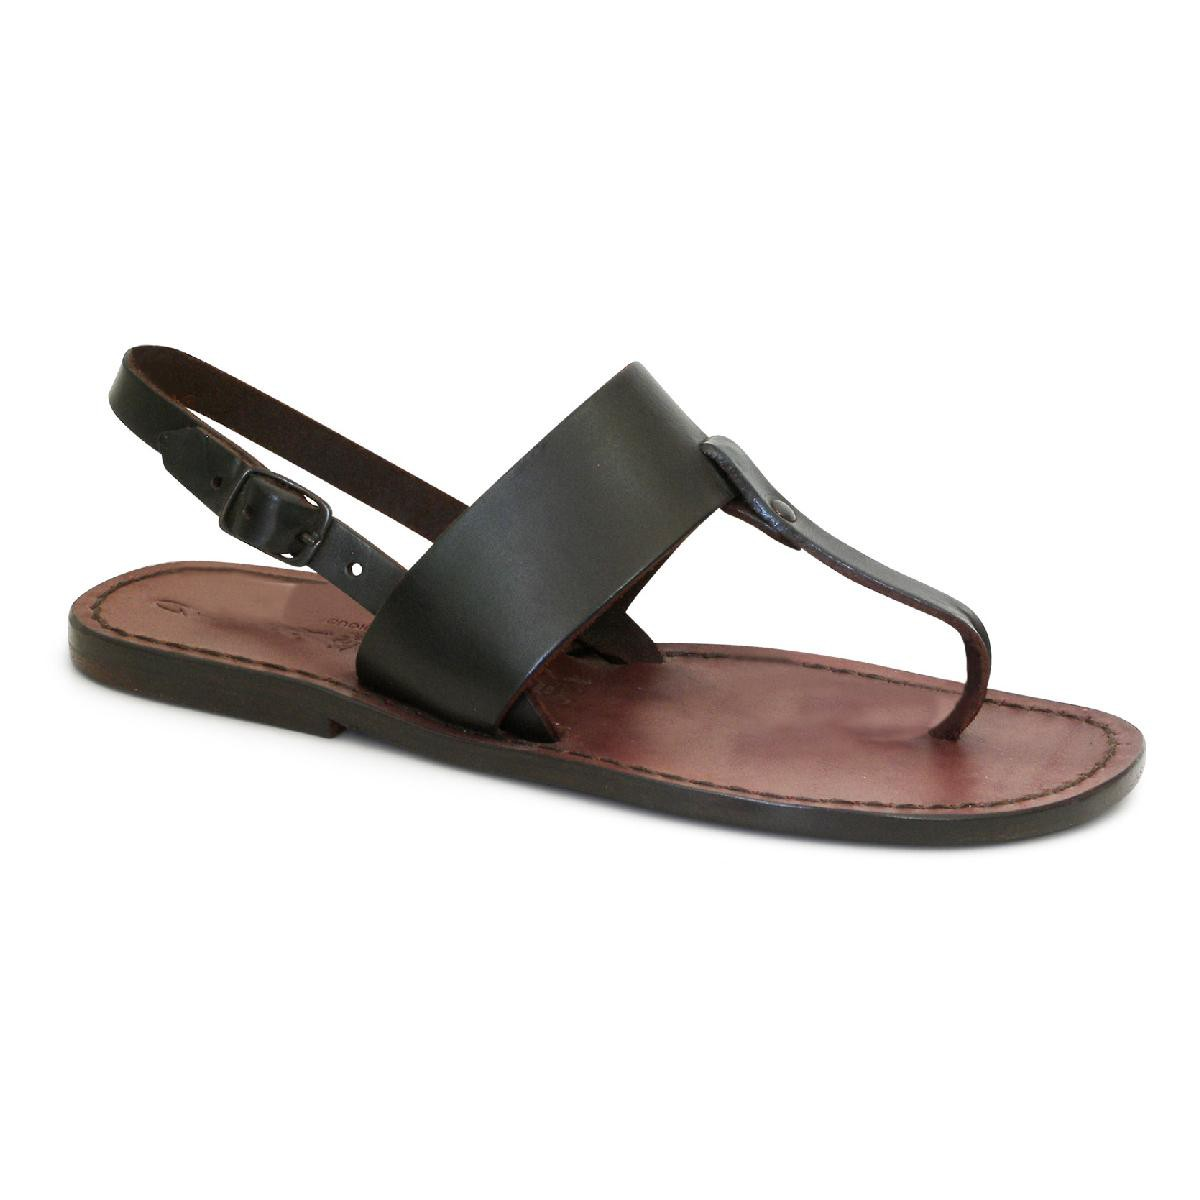 Free shipping on women's flip-flop sandals at appzdnatw.cf Shop a variety of flip-flops and thong sandals from the best brands including Birkenstock, Tory Burch, Steve Madden and more. Totally free shipping & returns.